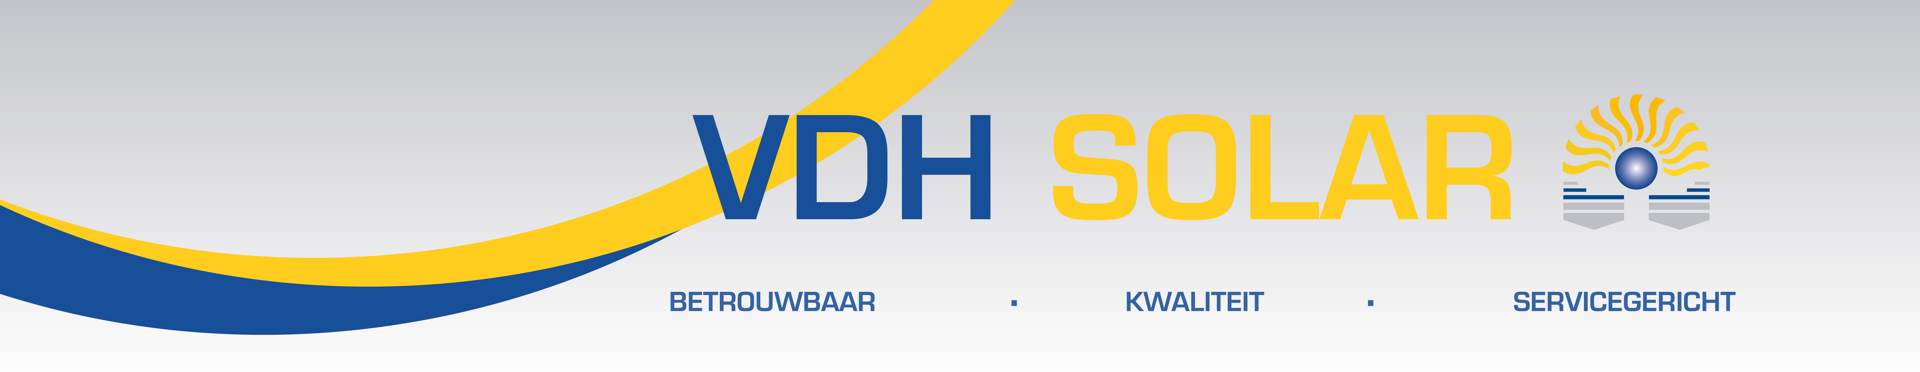 VDH Solar website banner